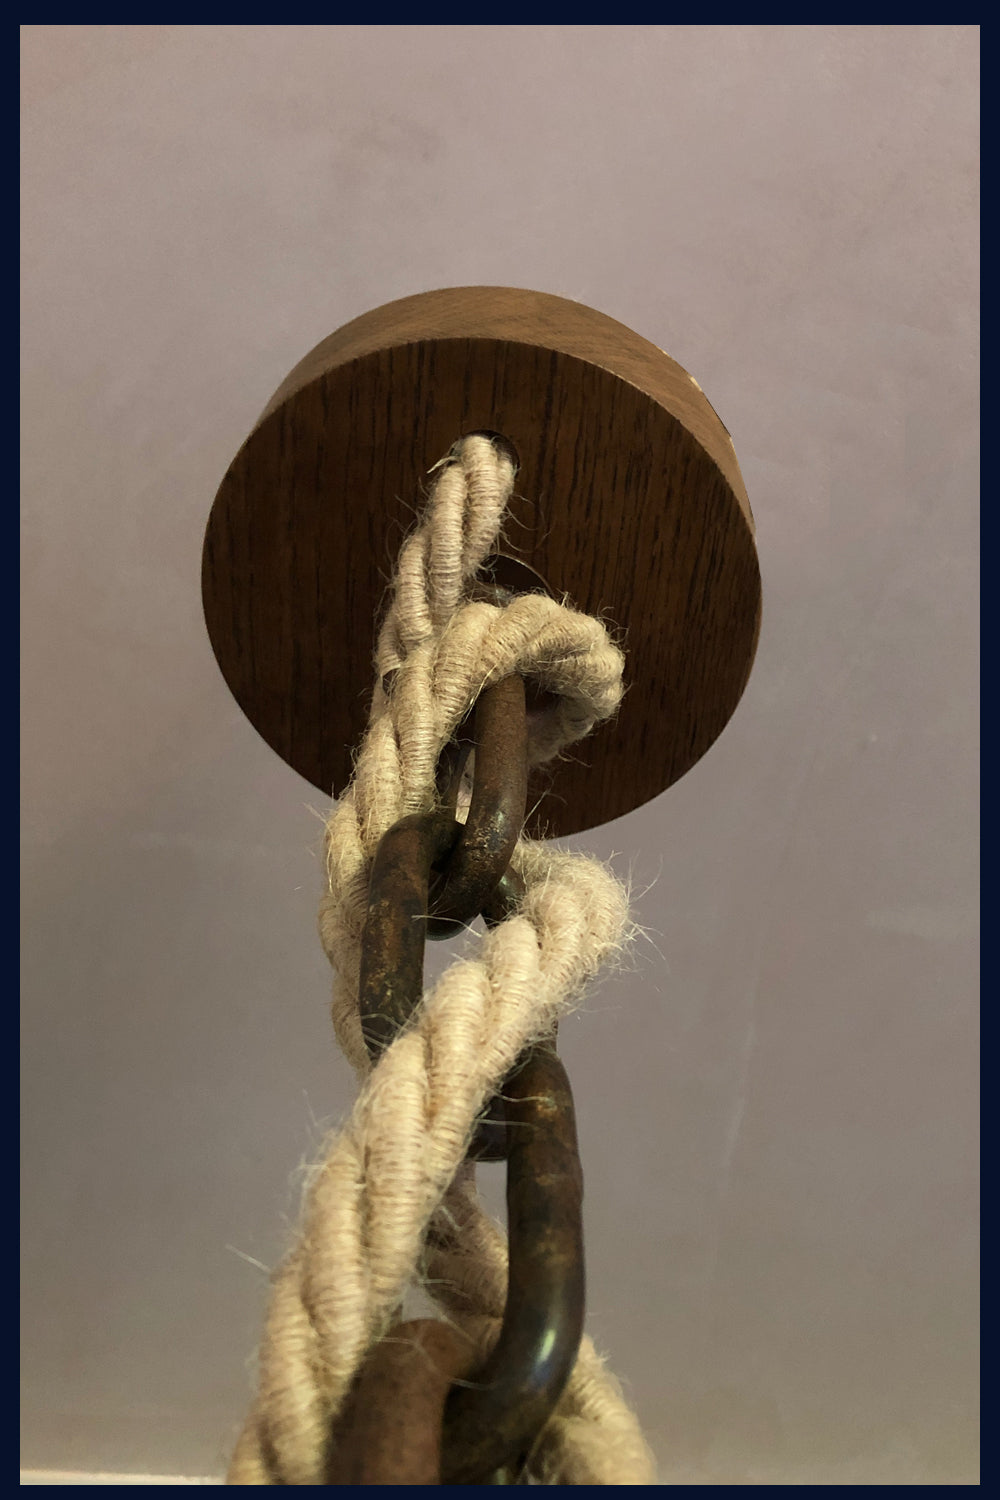 Raw 134  Very Old, Large Wooden Block & Tackle Pulley with Chain Double Pendant Light